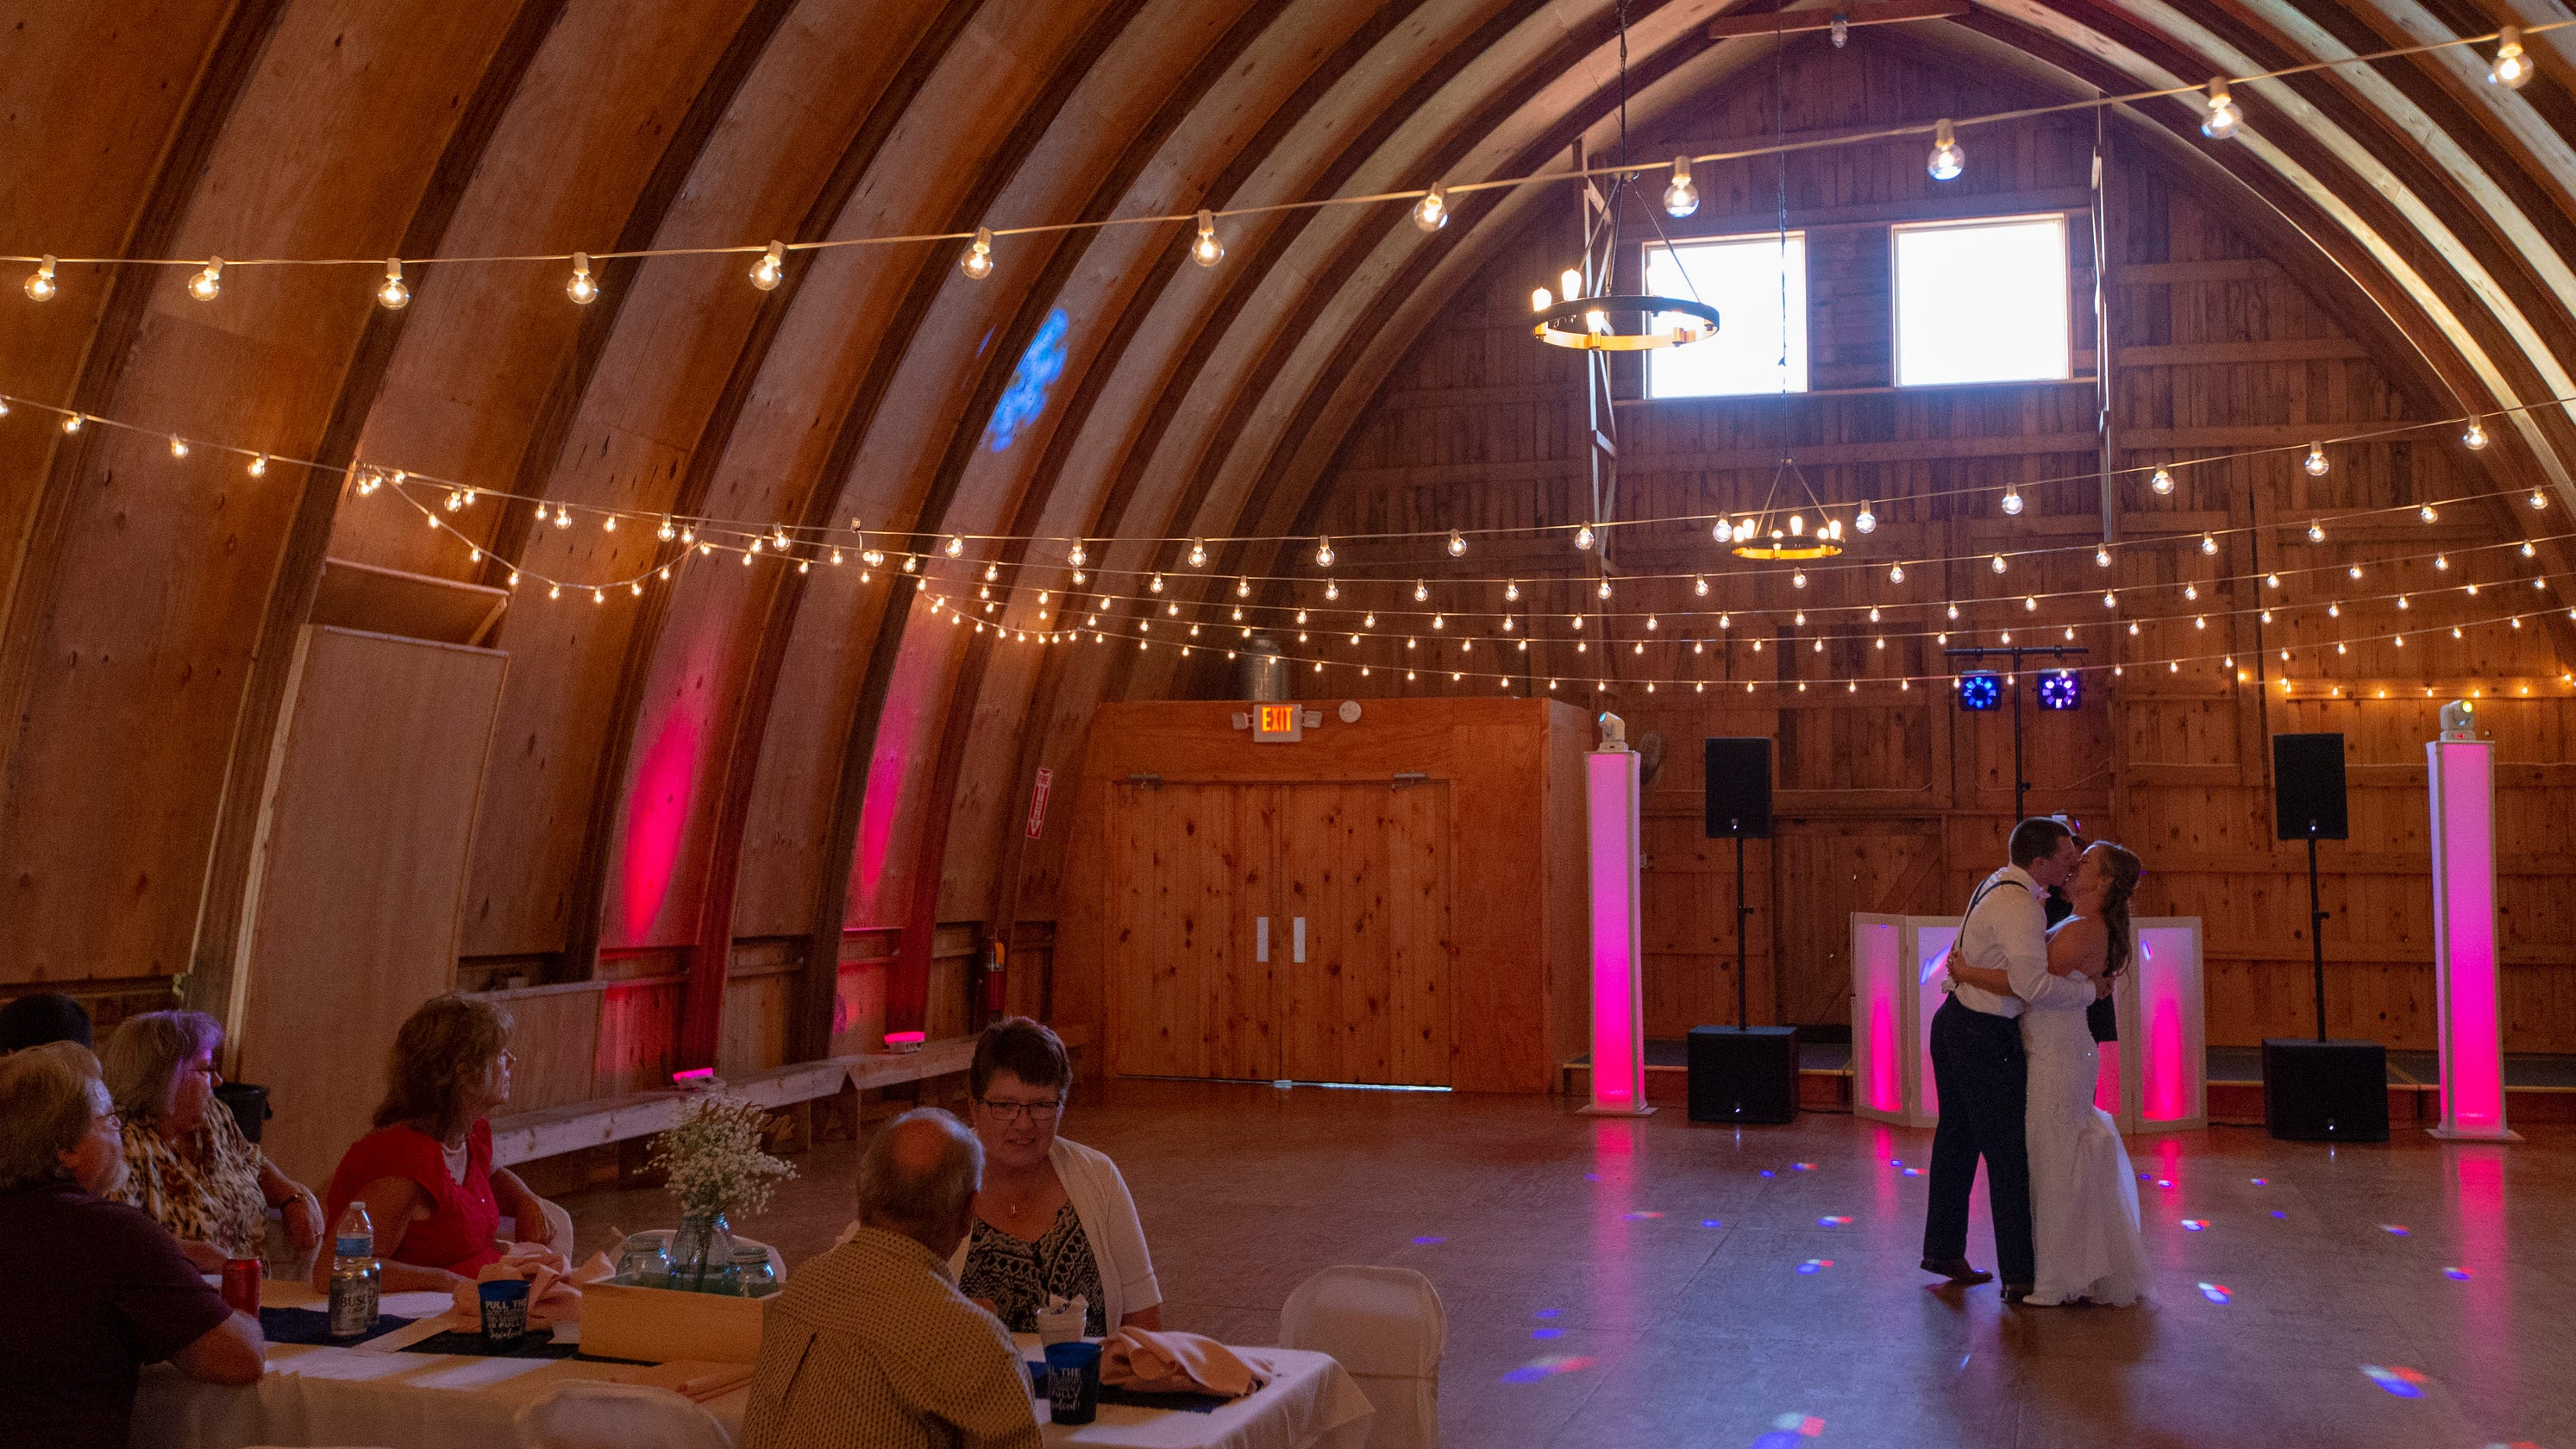 Wedding Barns In Wisconsin Are Subject To State Liquor